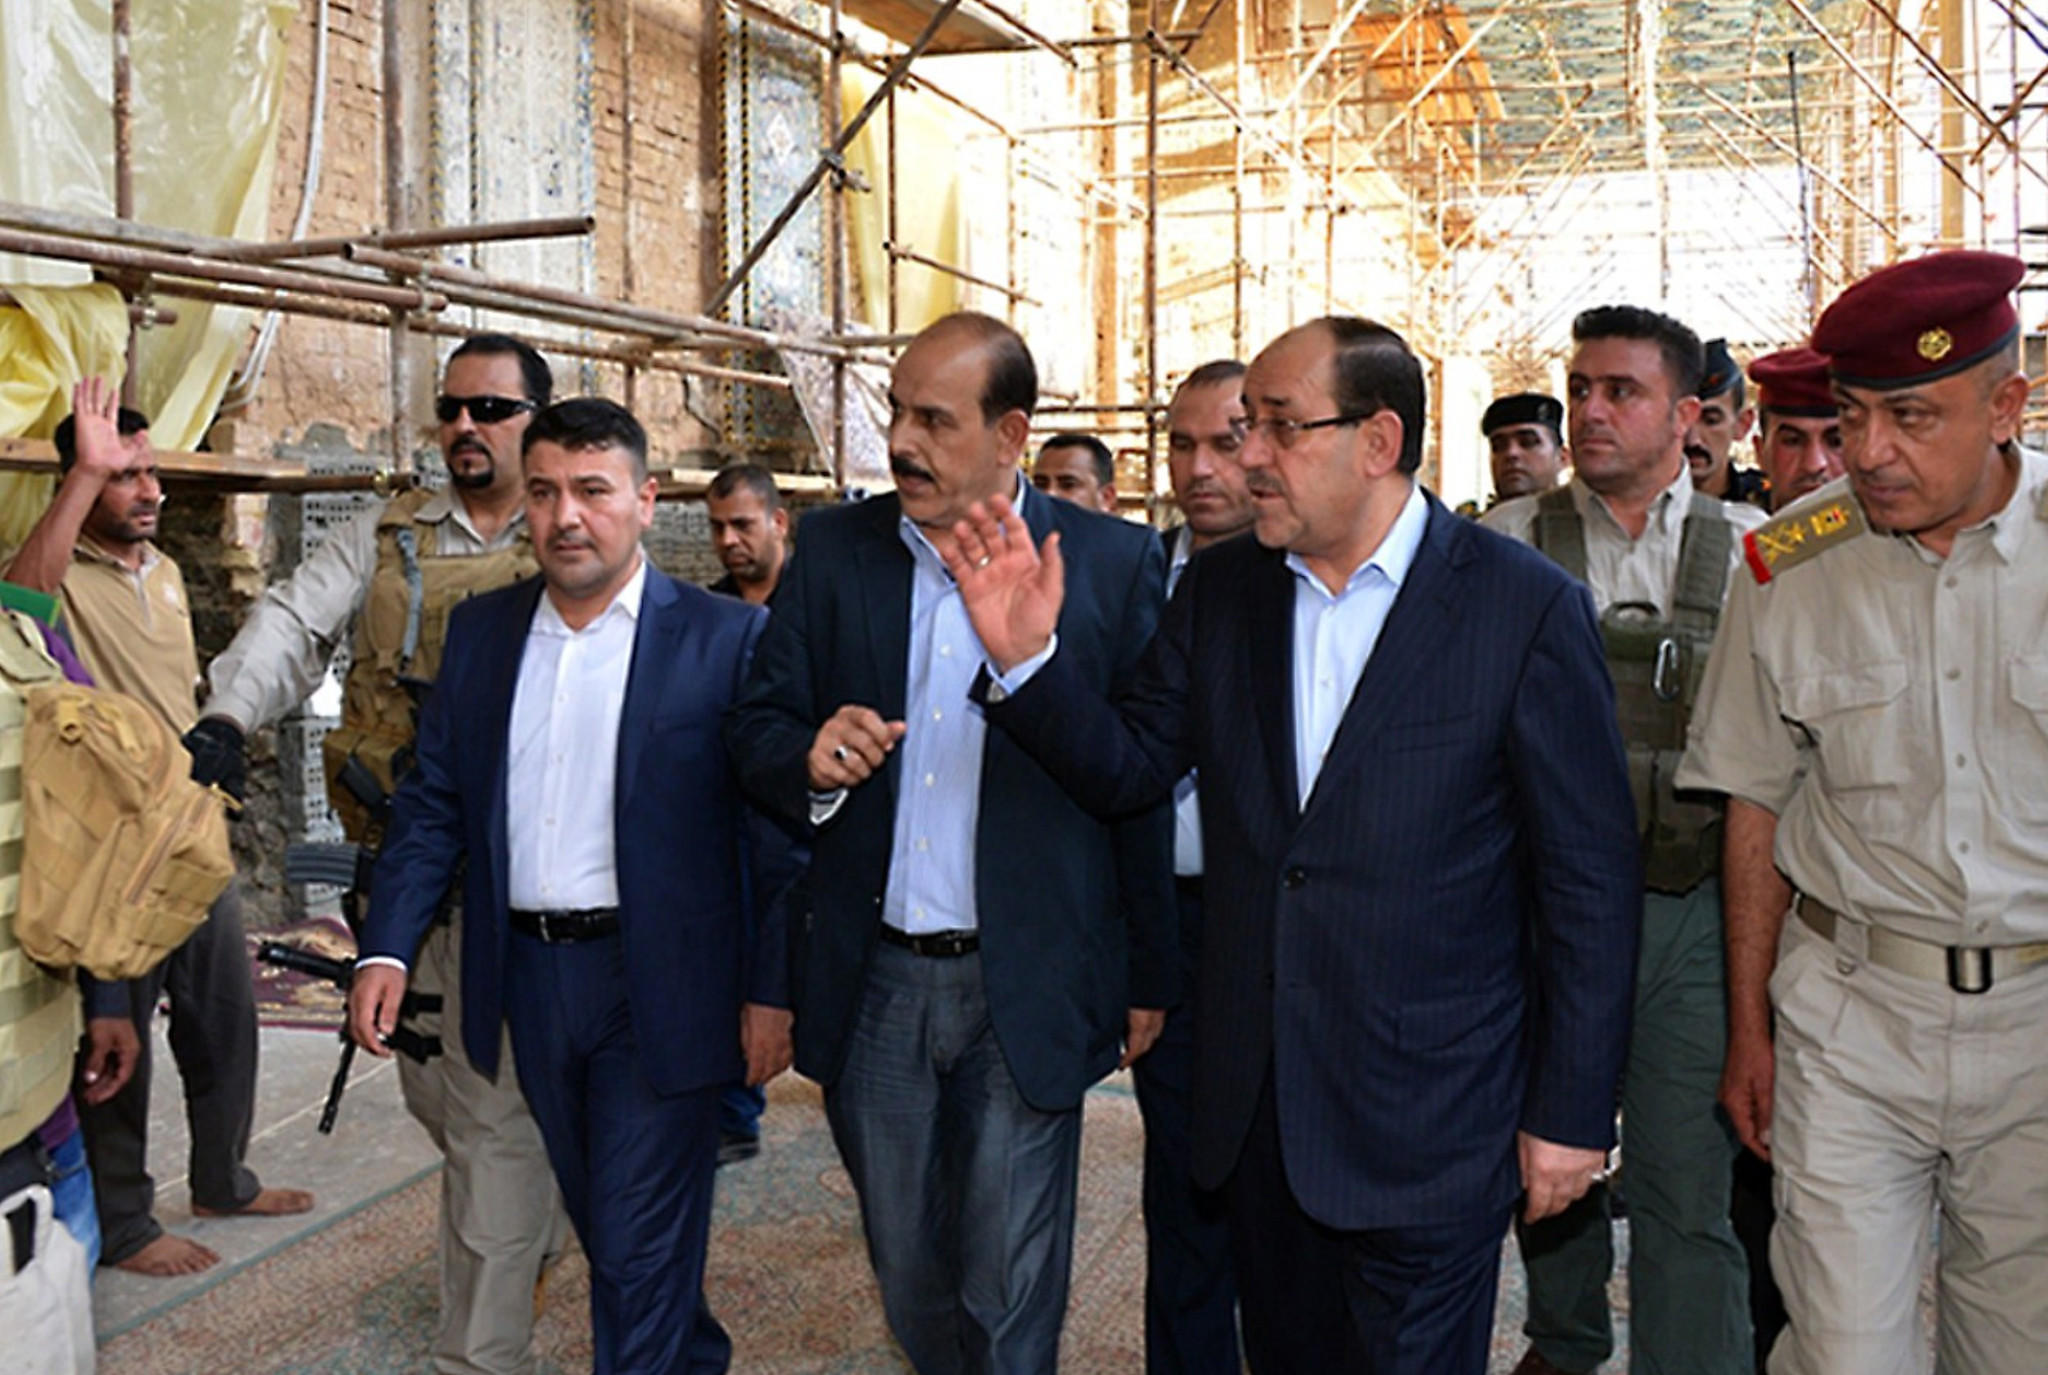 A handout picture released by the Iraqi Prime Minister's media office shows Iraqi Prime Minister Nuri al-Maliki, center, during a visit to the embattled city of Samarra on June 13, 2014.